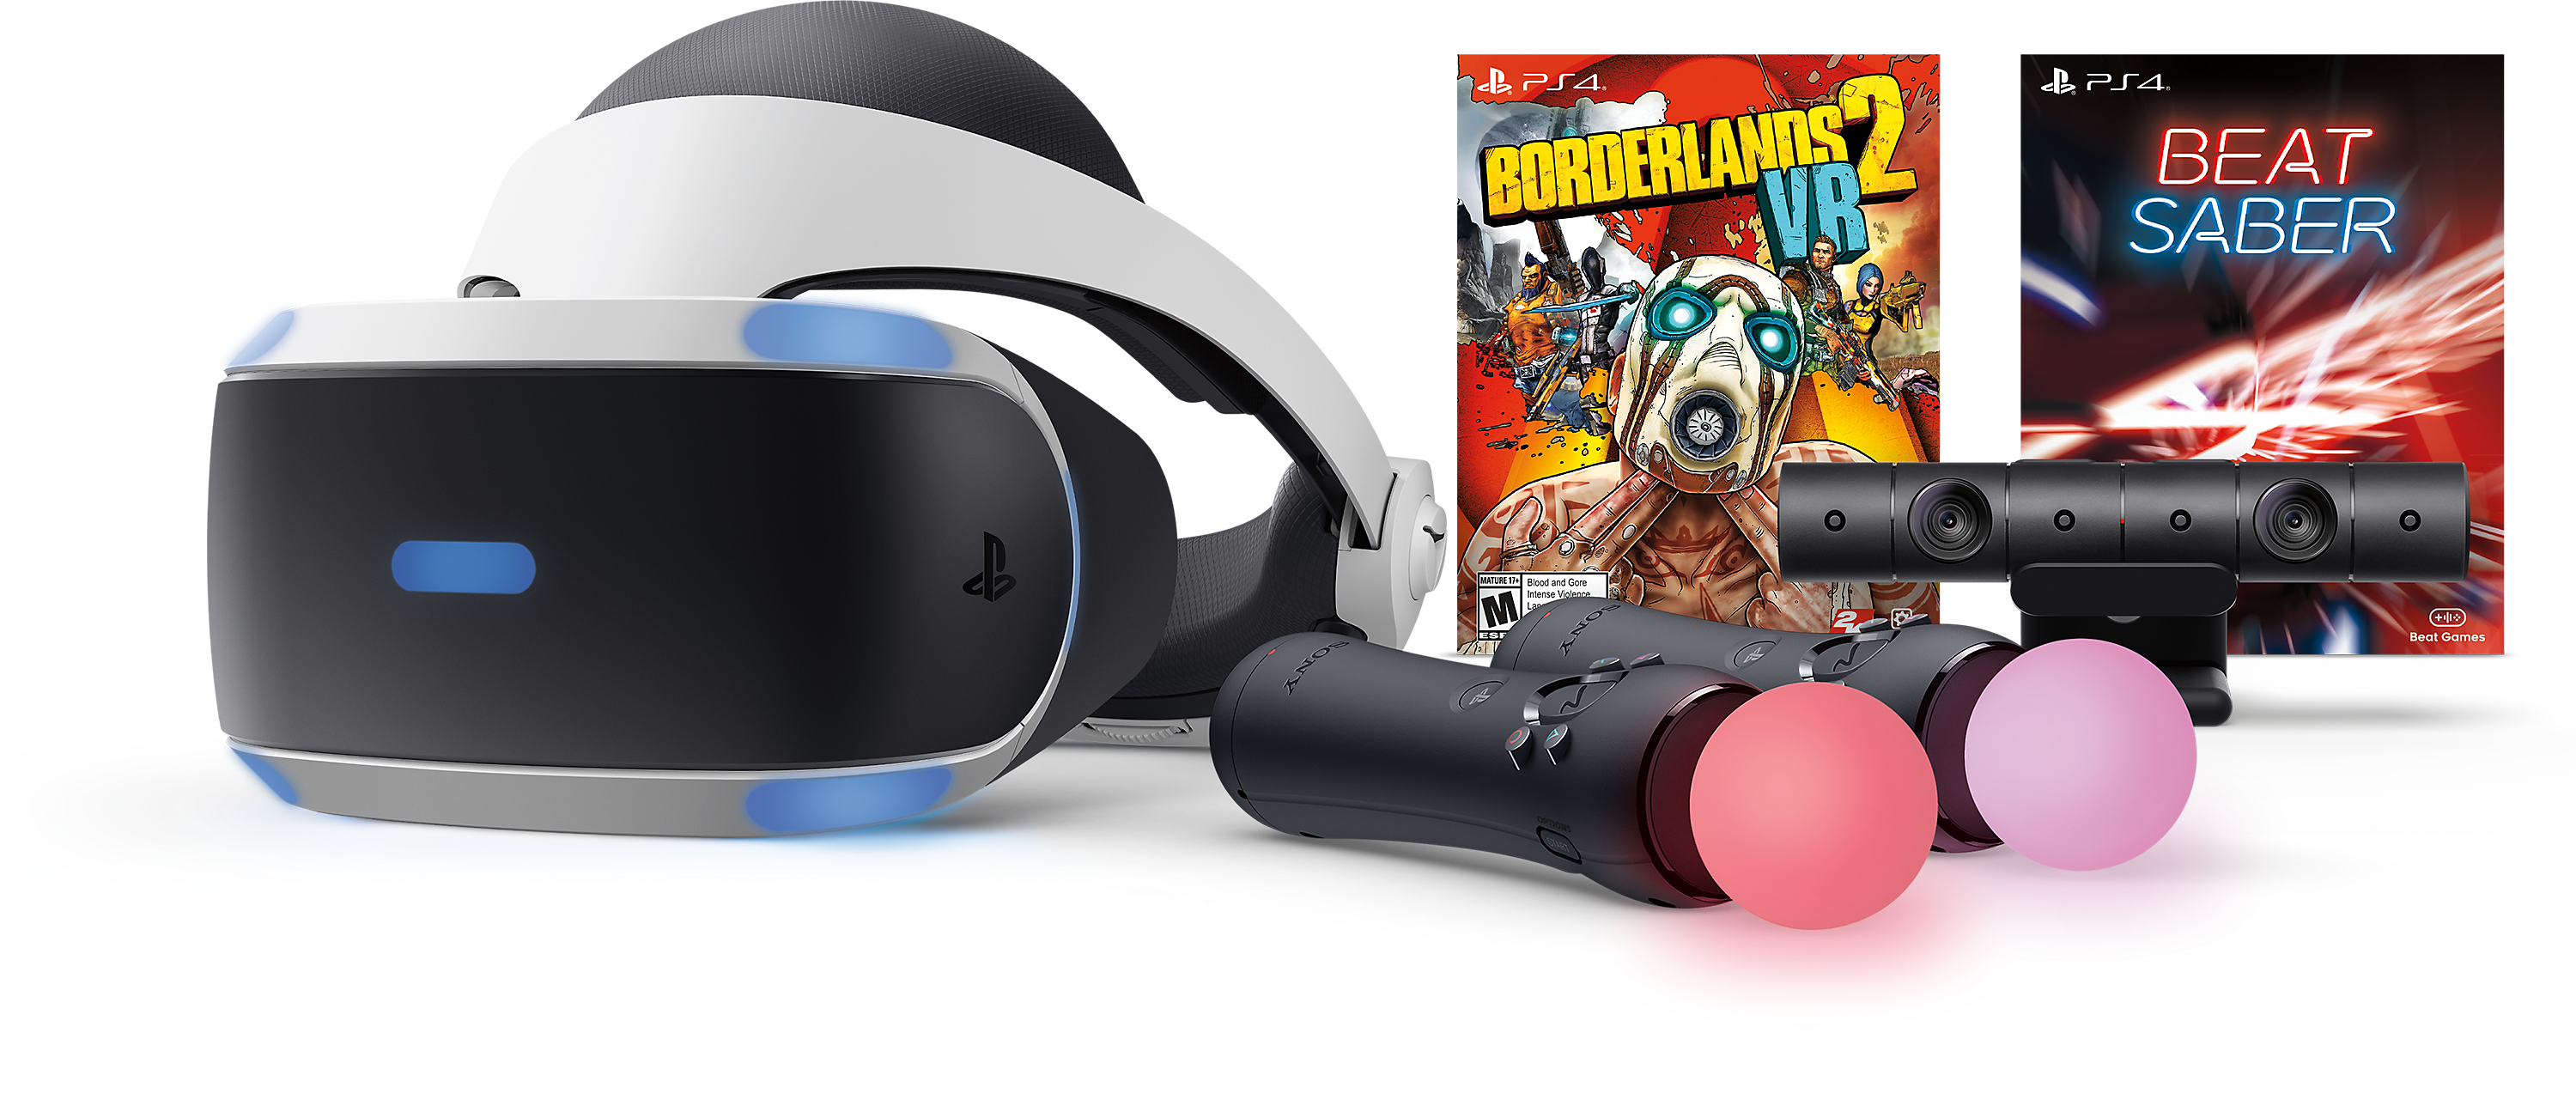 PlayStation VR Bundles - Starting at $199.99